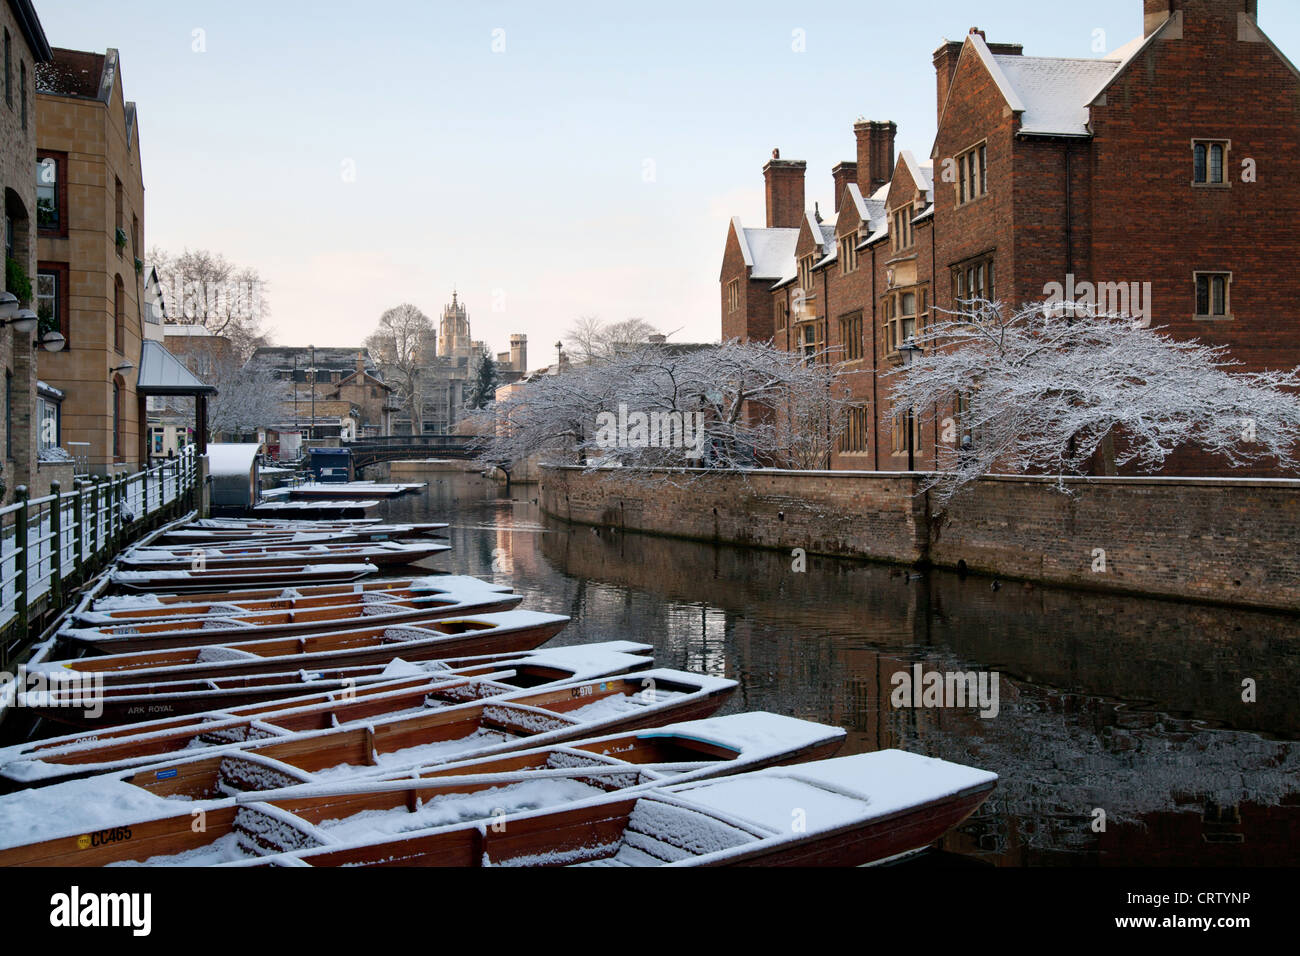 Snowy Punts on River Cam, Cambridge opposite Magdalene College. Stock Photo